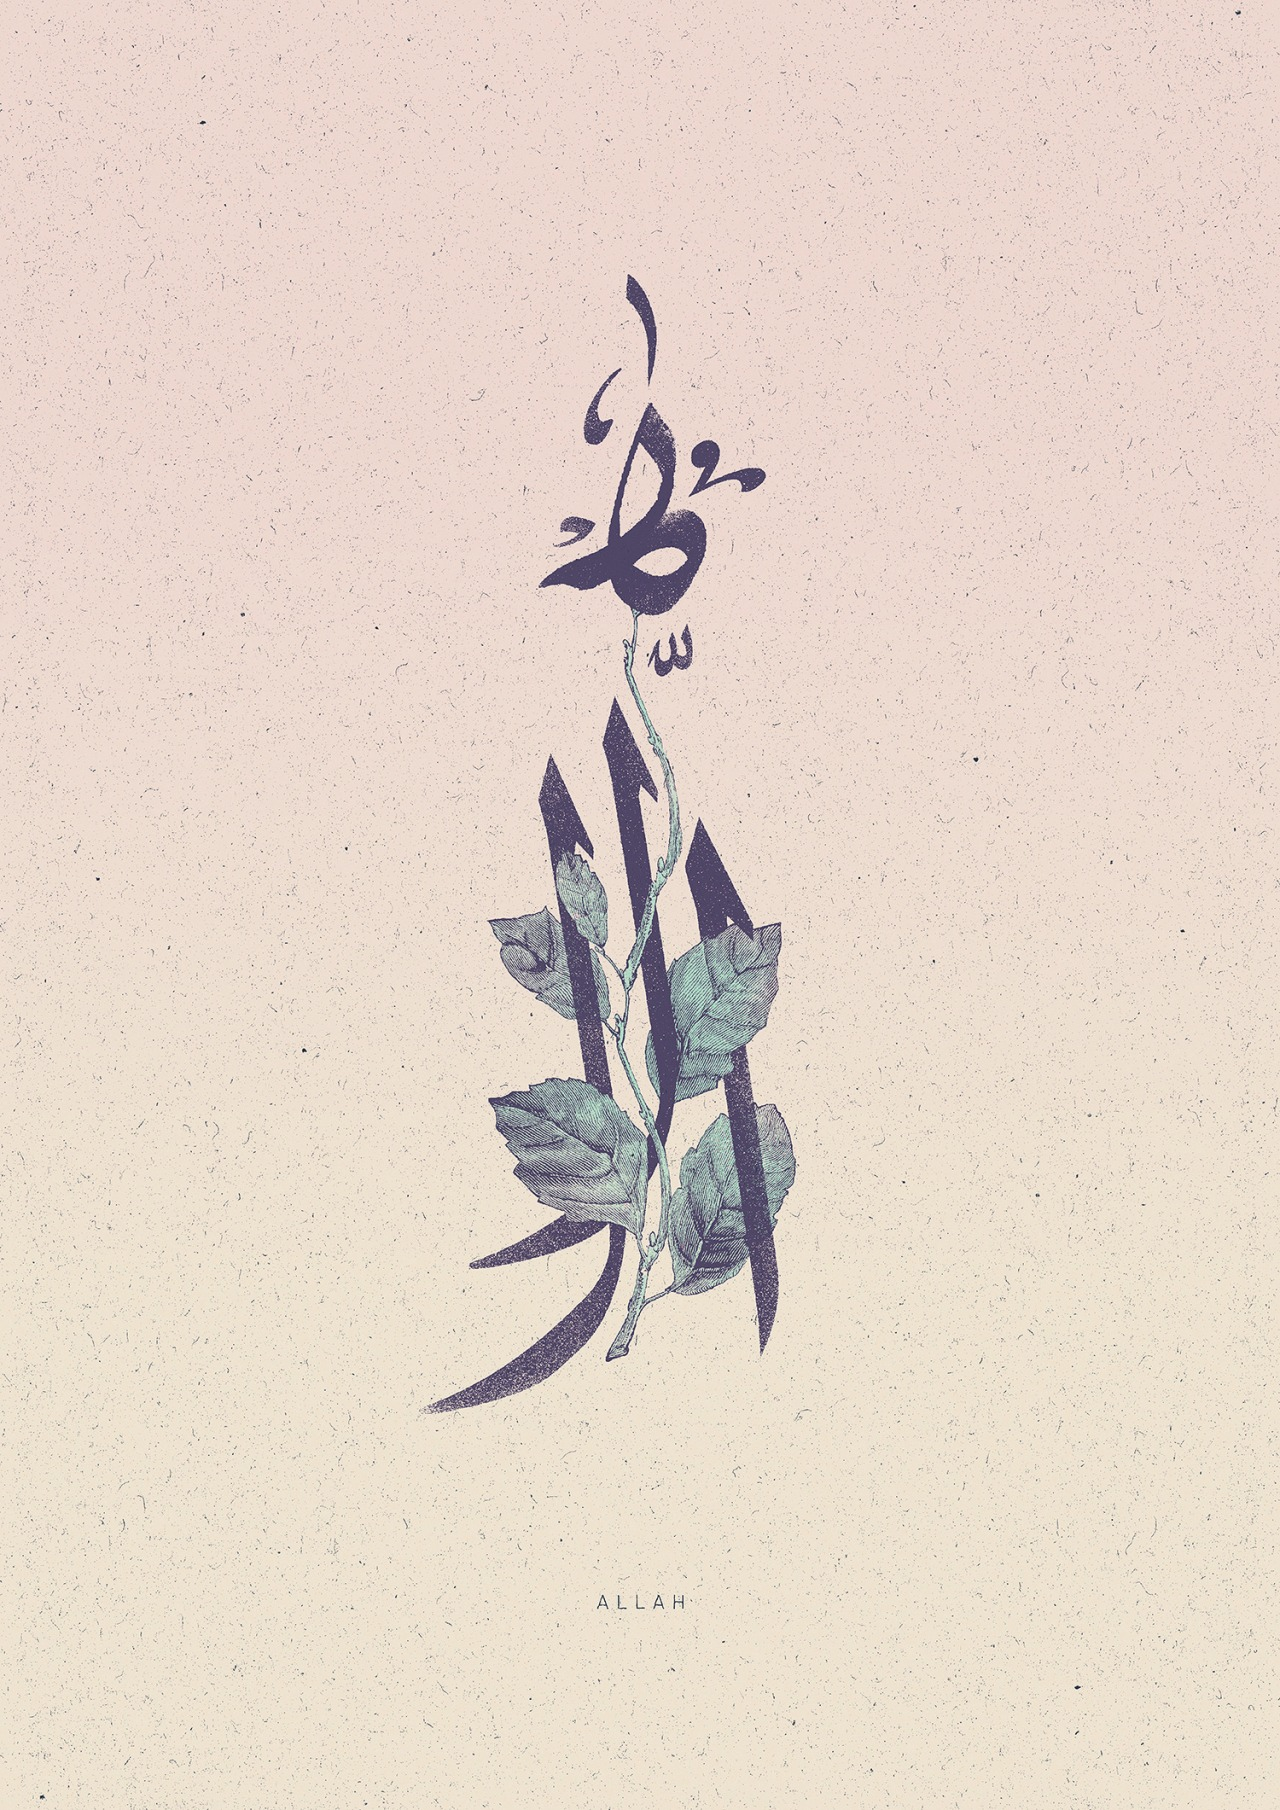 """allah calligraphy in discontinuous letters"